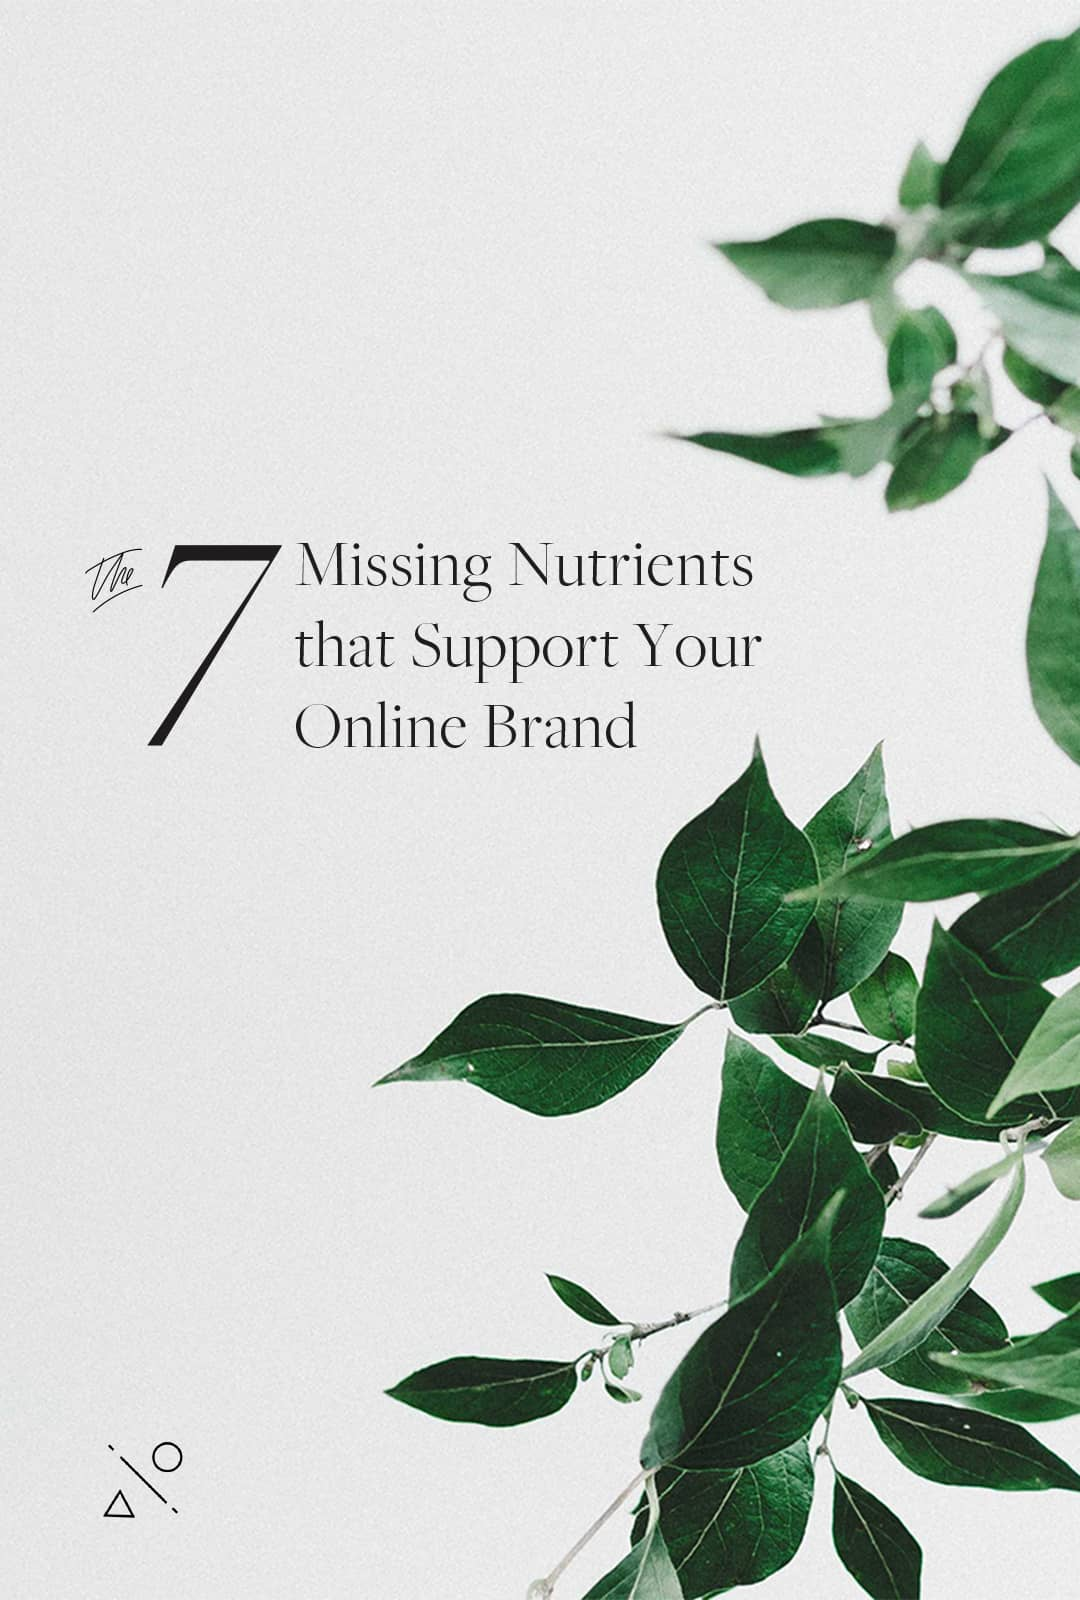 Class: The 7 Missing Nutrients that Support your Online Brand